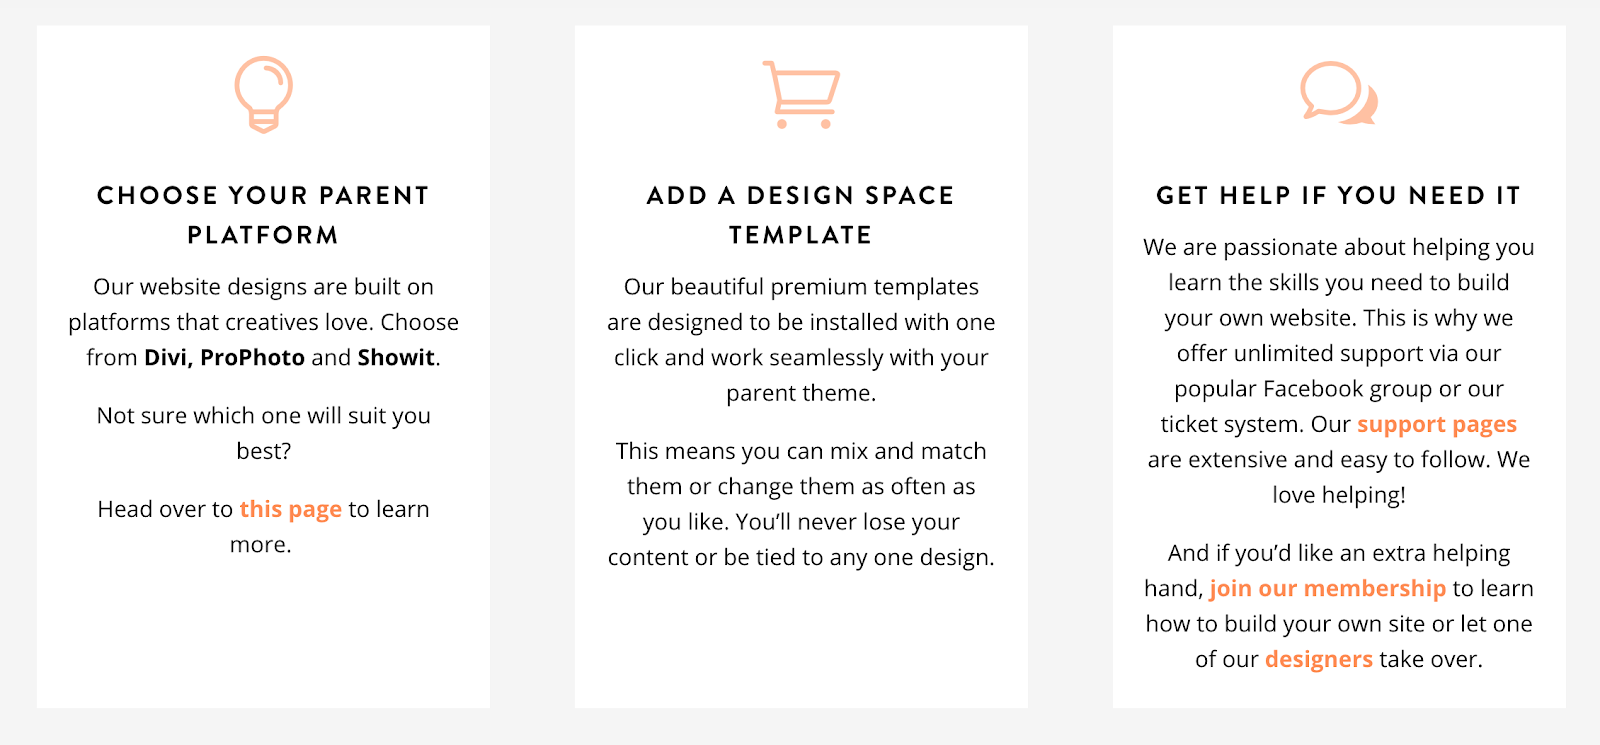 the design space options